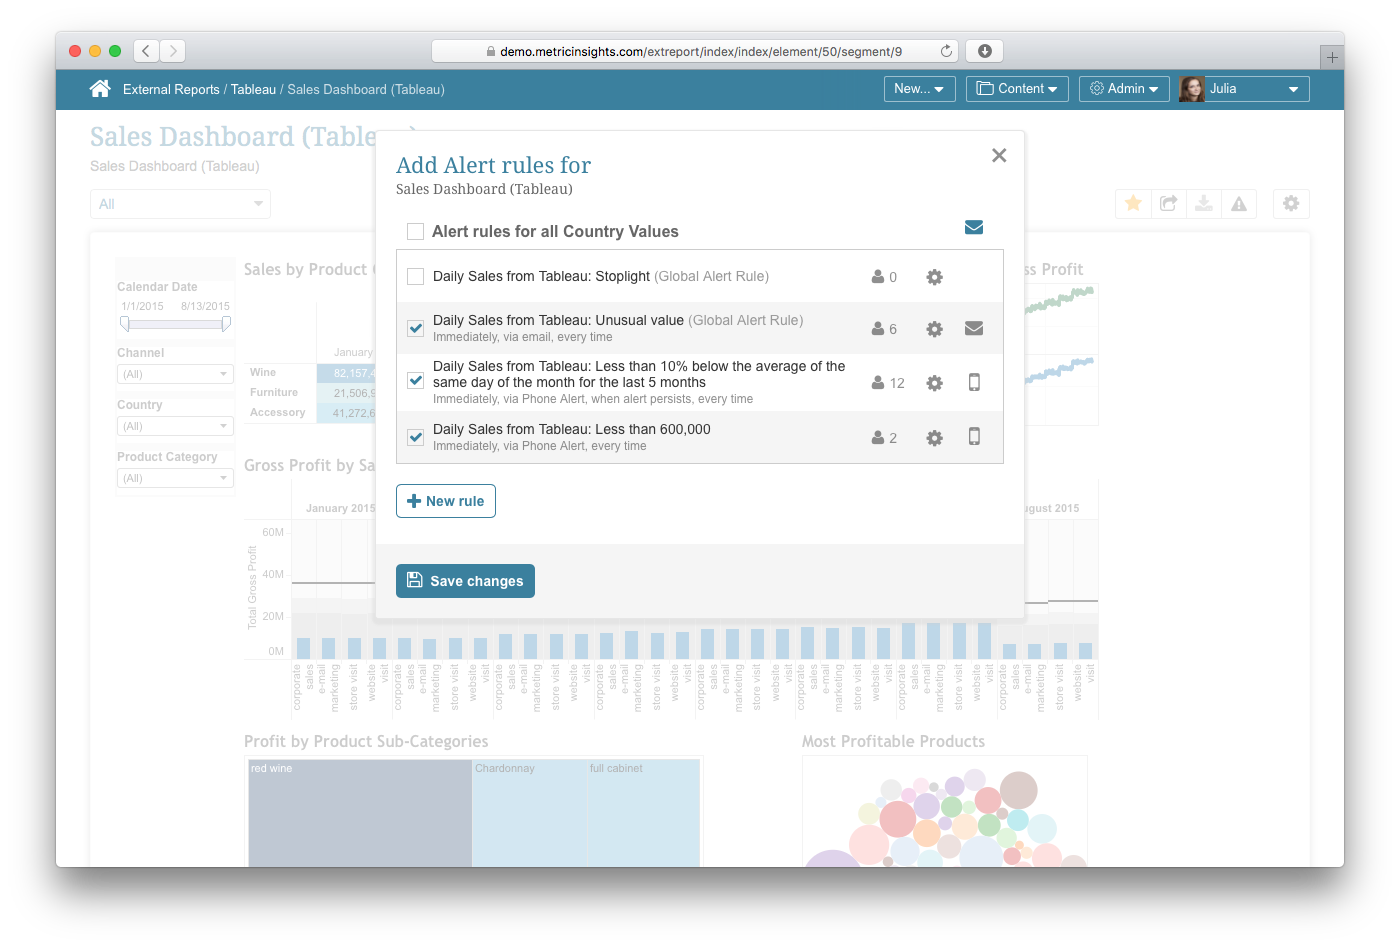 Push Intelligence for Tableau - Metric Insights